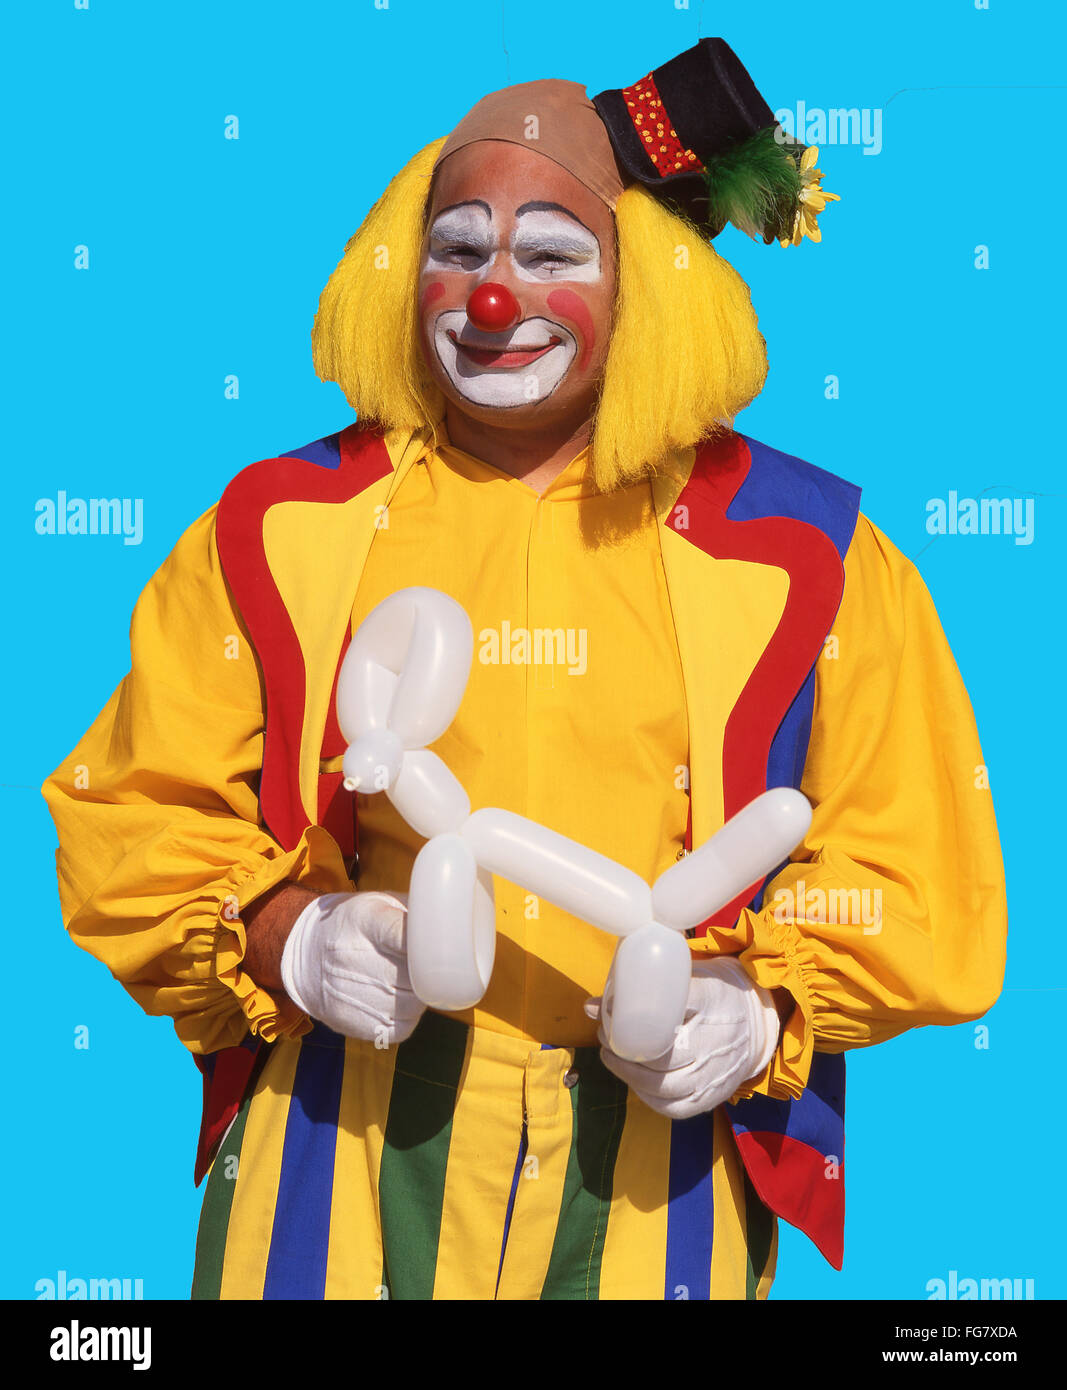 Colourful clown holding modelled balloon, Berkshire, England, United Kingdom - Stock Image